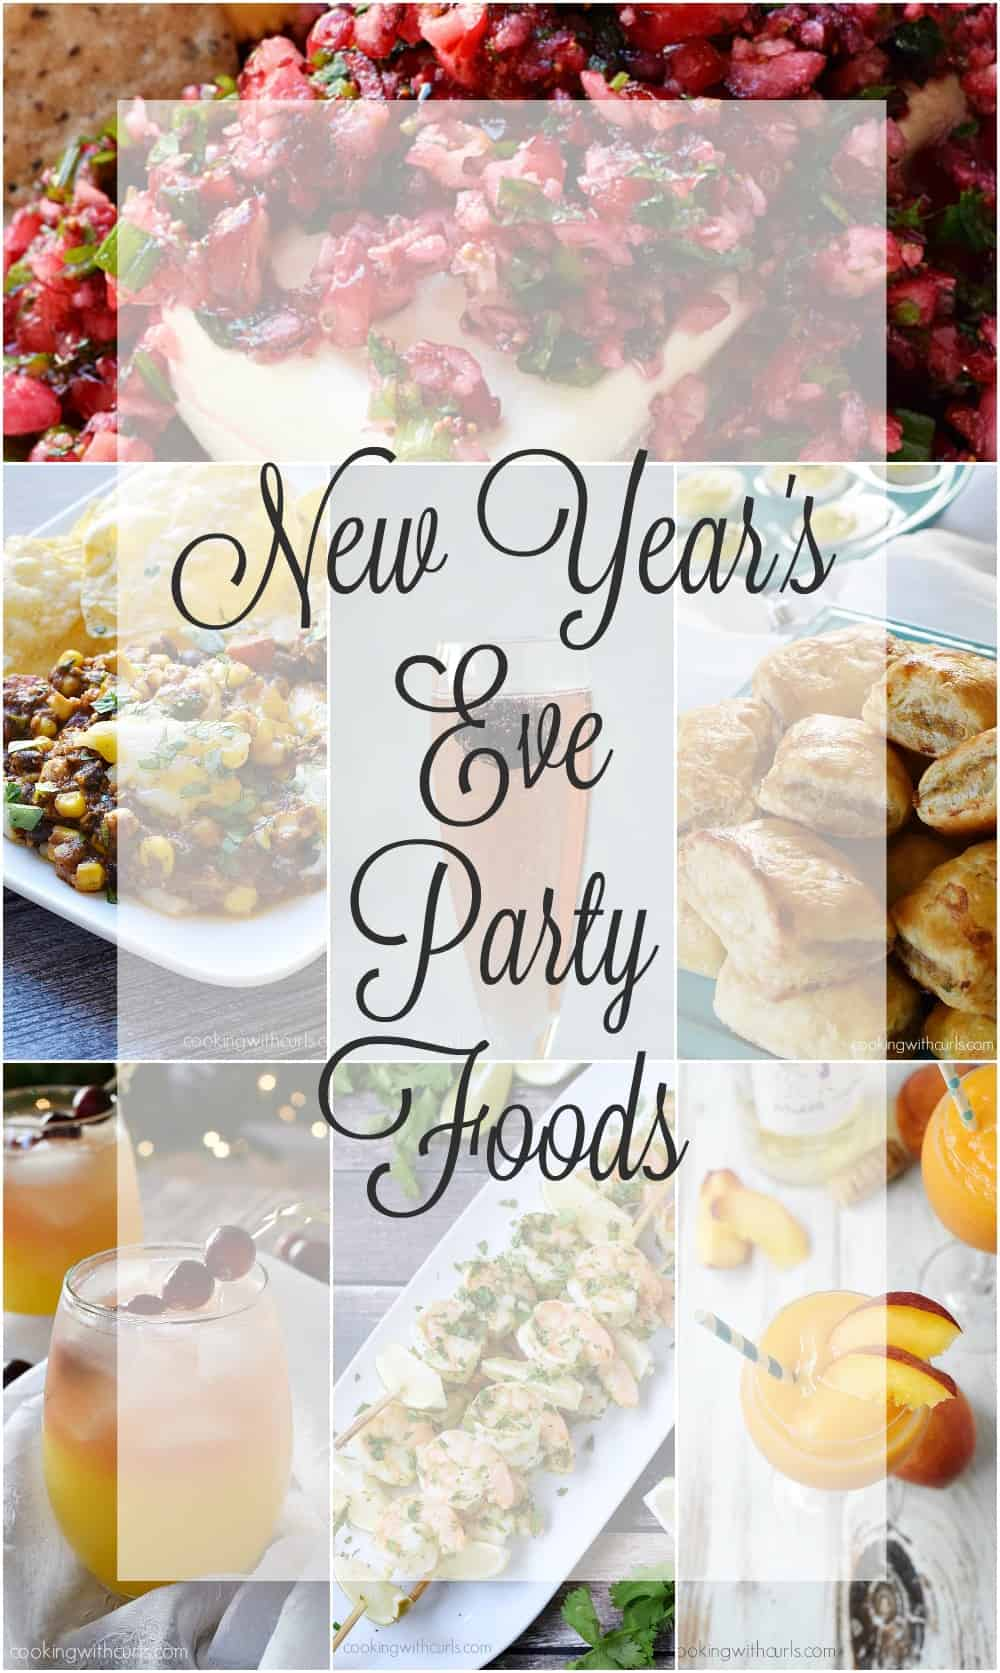 New Years Eve Party Foods 2015   cookingwithcurls.com